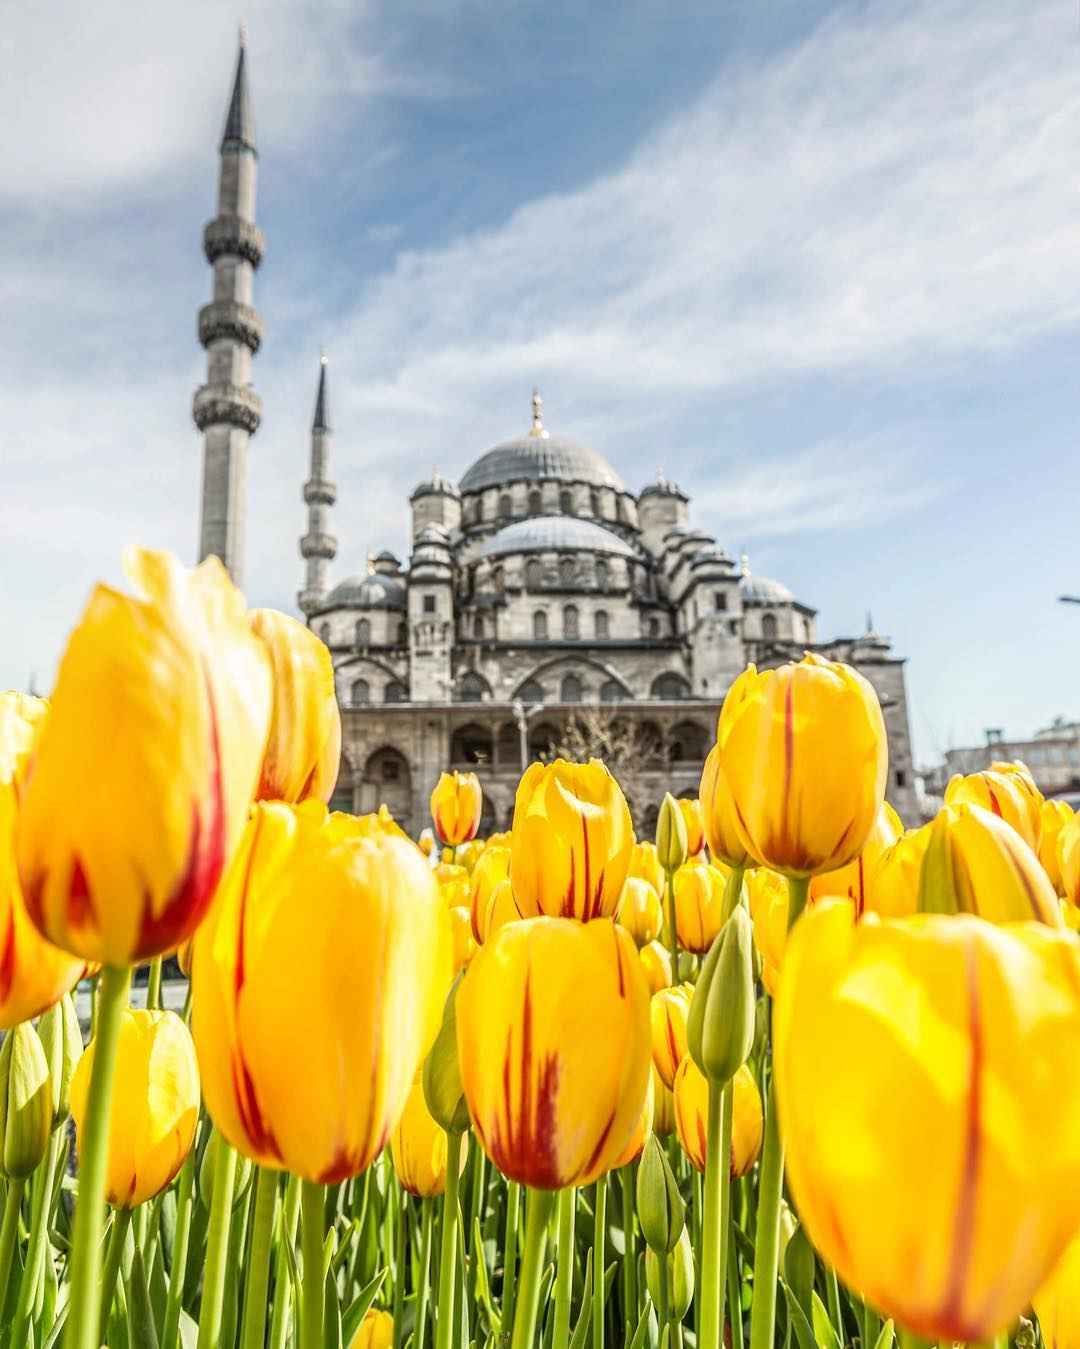 Bright yellow tulips in front of historic landmark Hagia Sophia in Istanbul, Turkey.